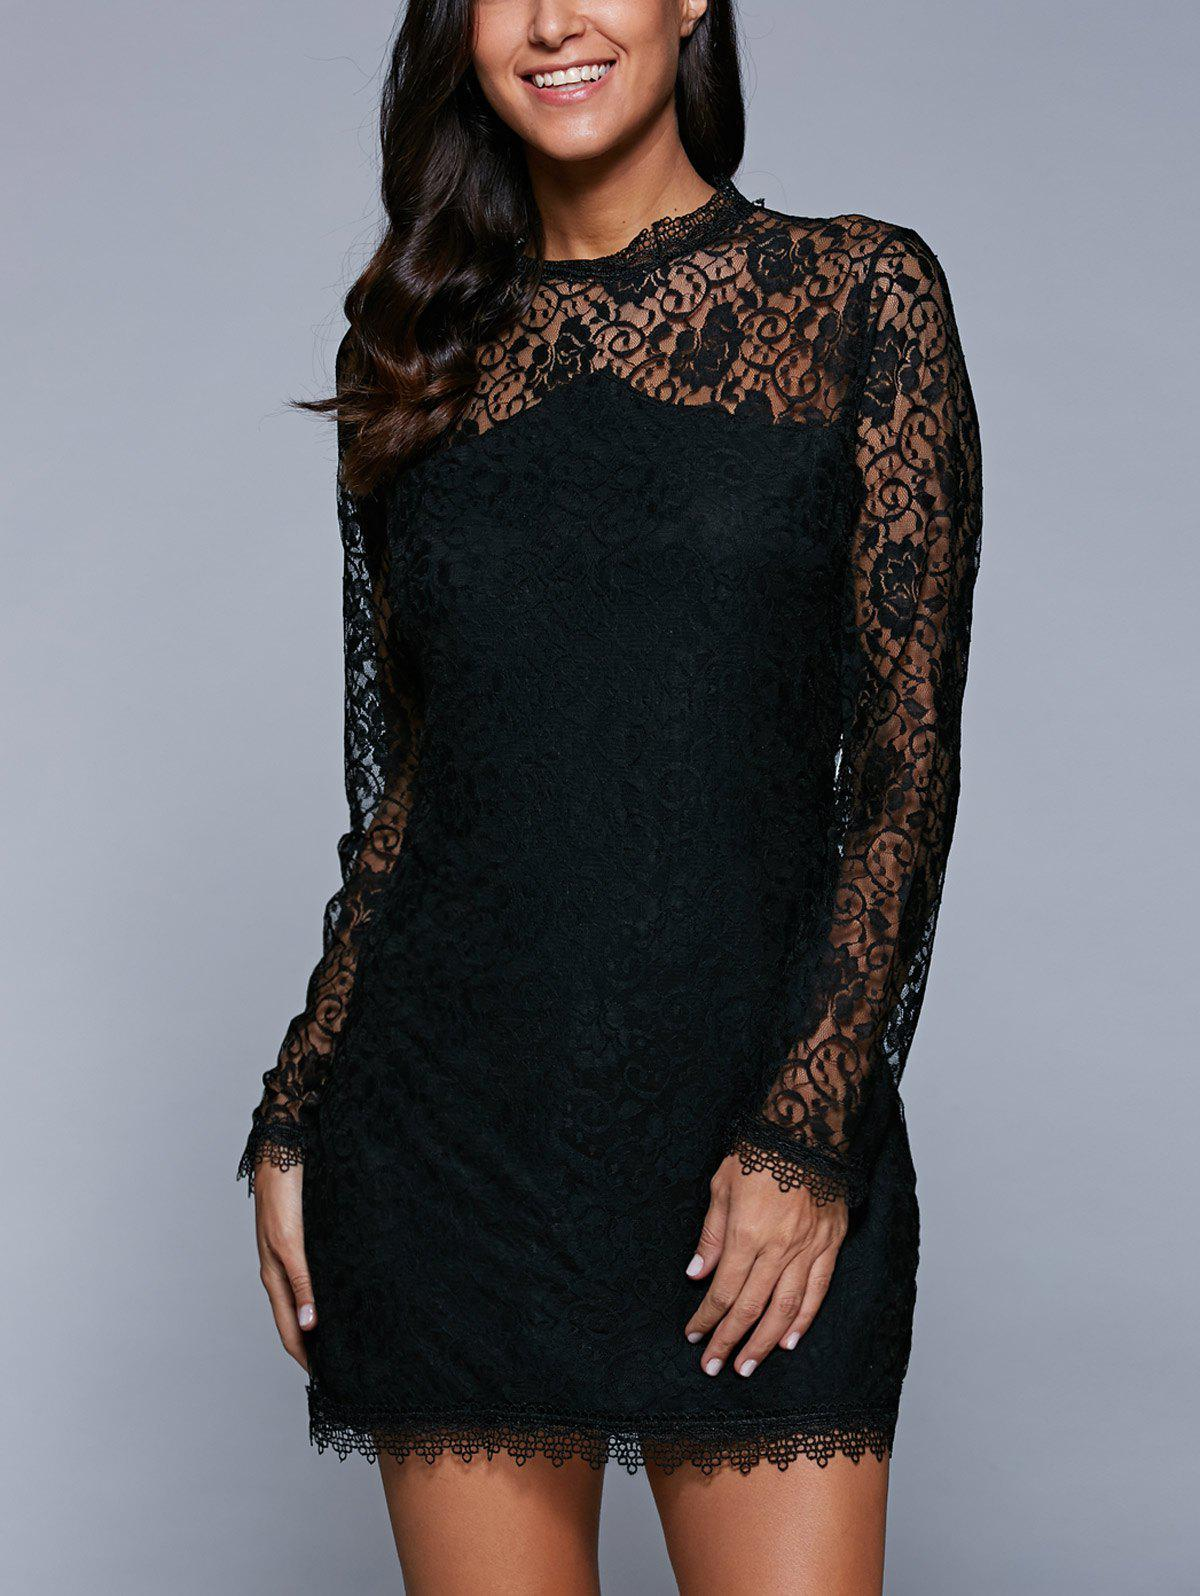 Long Sleeve See-Through Lace Bodycon Dress long sleeve plunge see through lace tight pencil dress